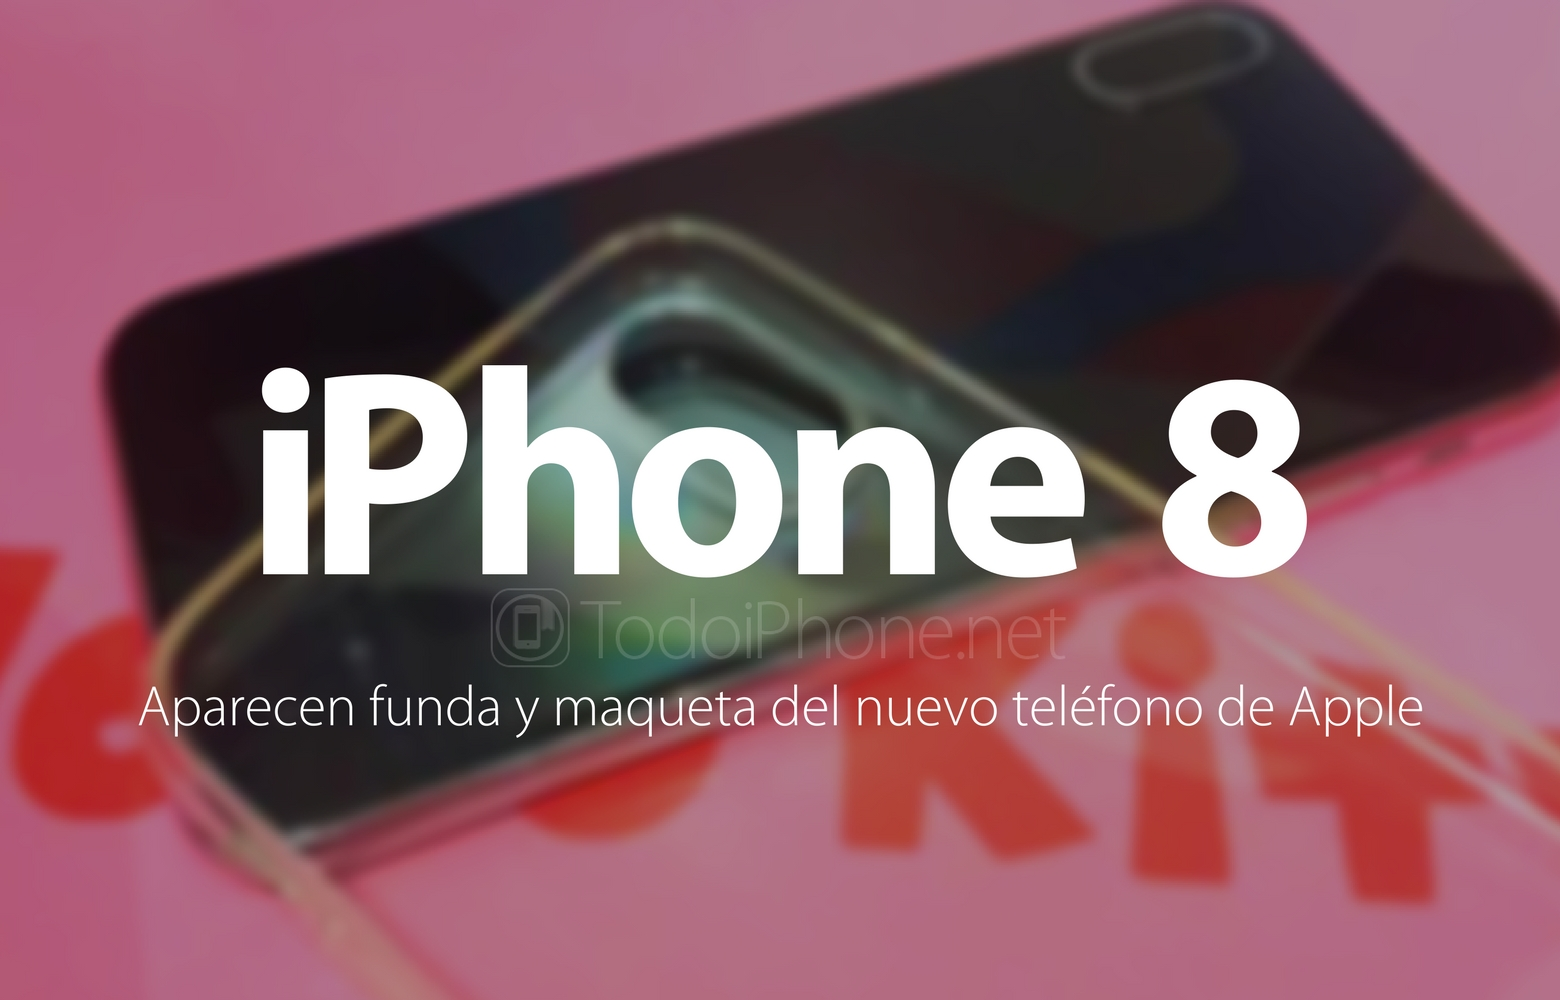 iPhone-8-fundas-maquetas-rumor